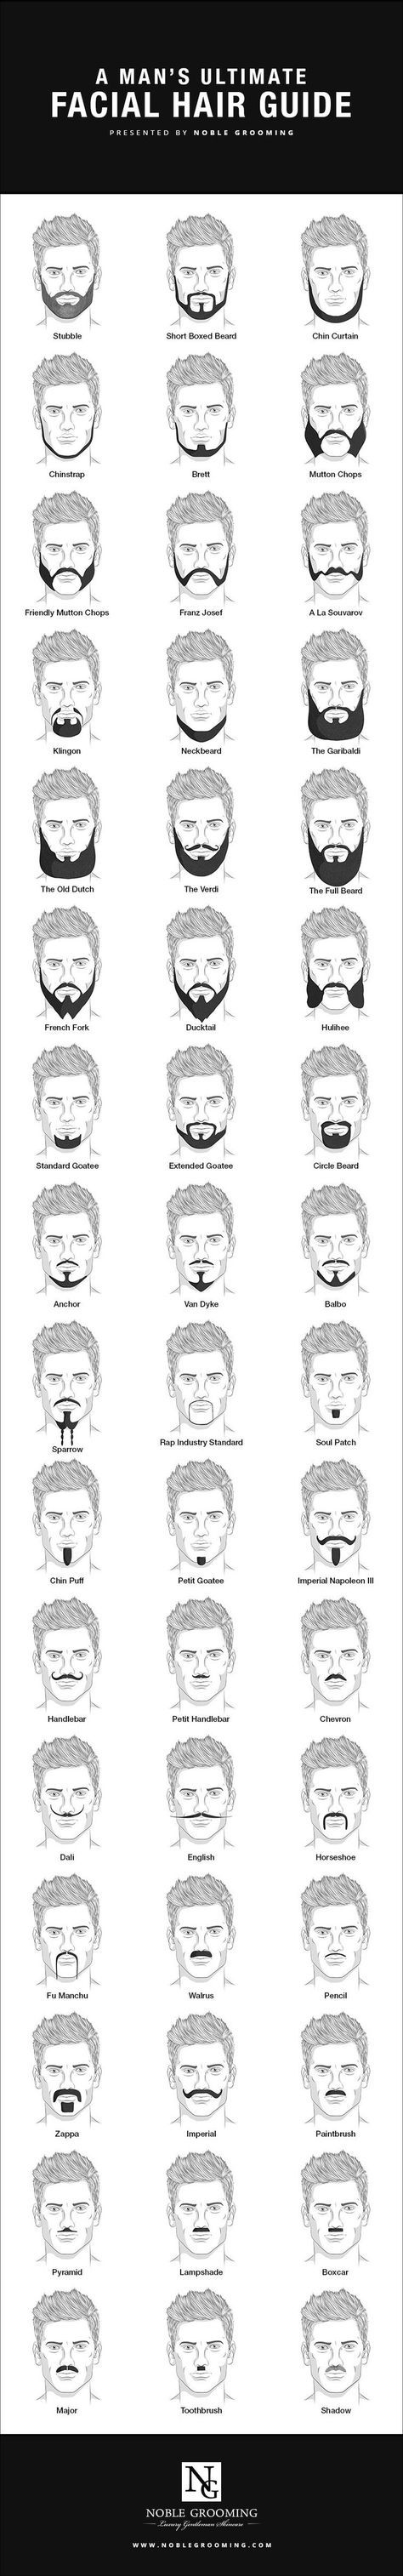 nice Facial Hair Styles by http://www.danafashiontrends.us/big-men-fashion/facial-hair-styles/